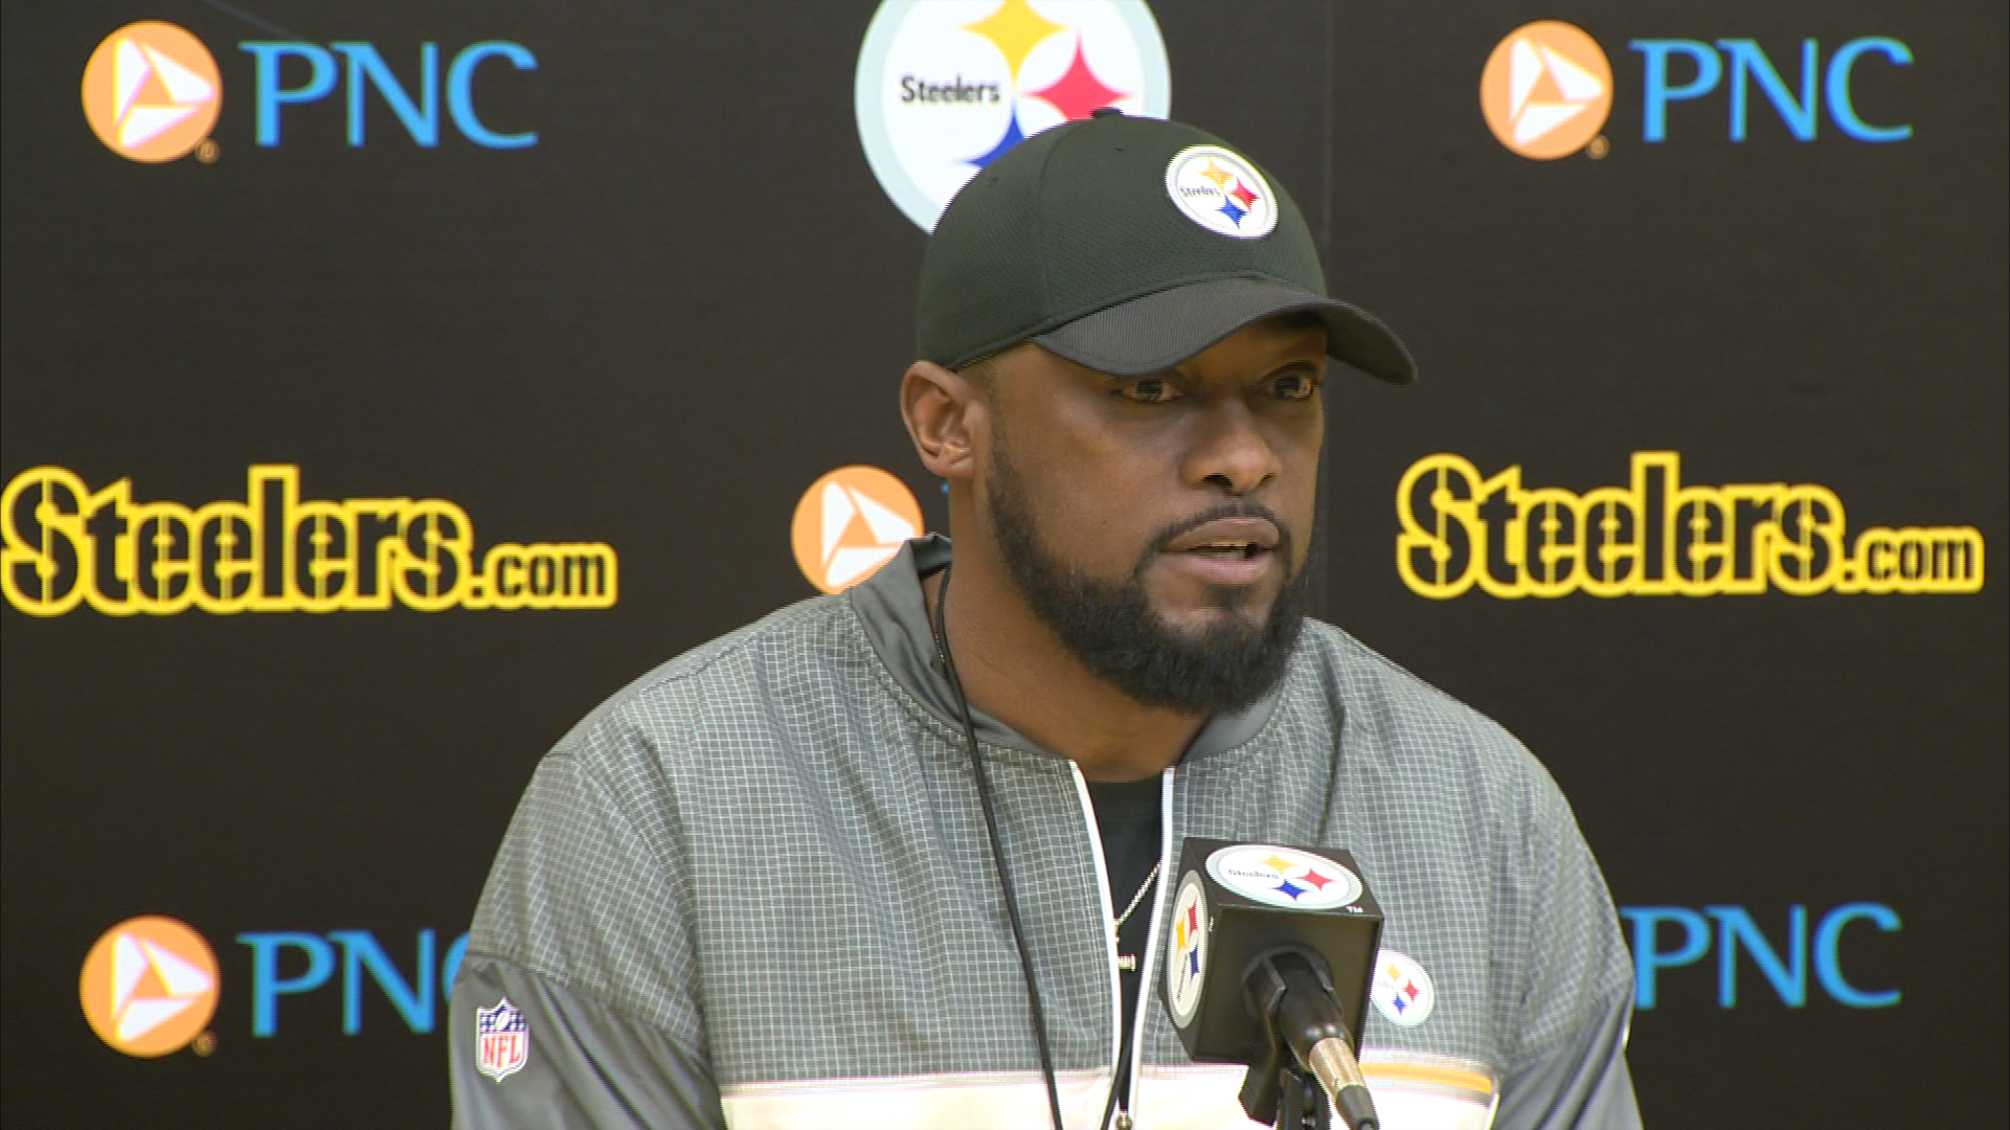 Pittsburgh Steelers: Mike Tomlin earns another contract extension